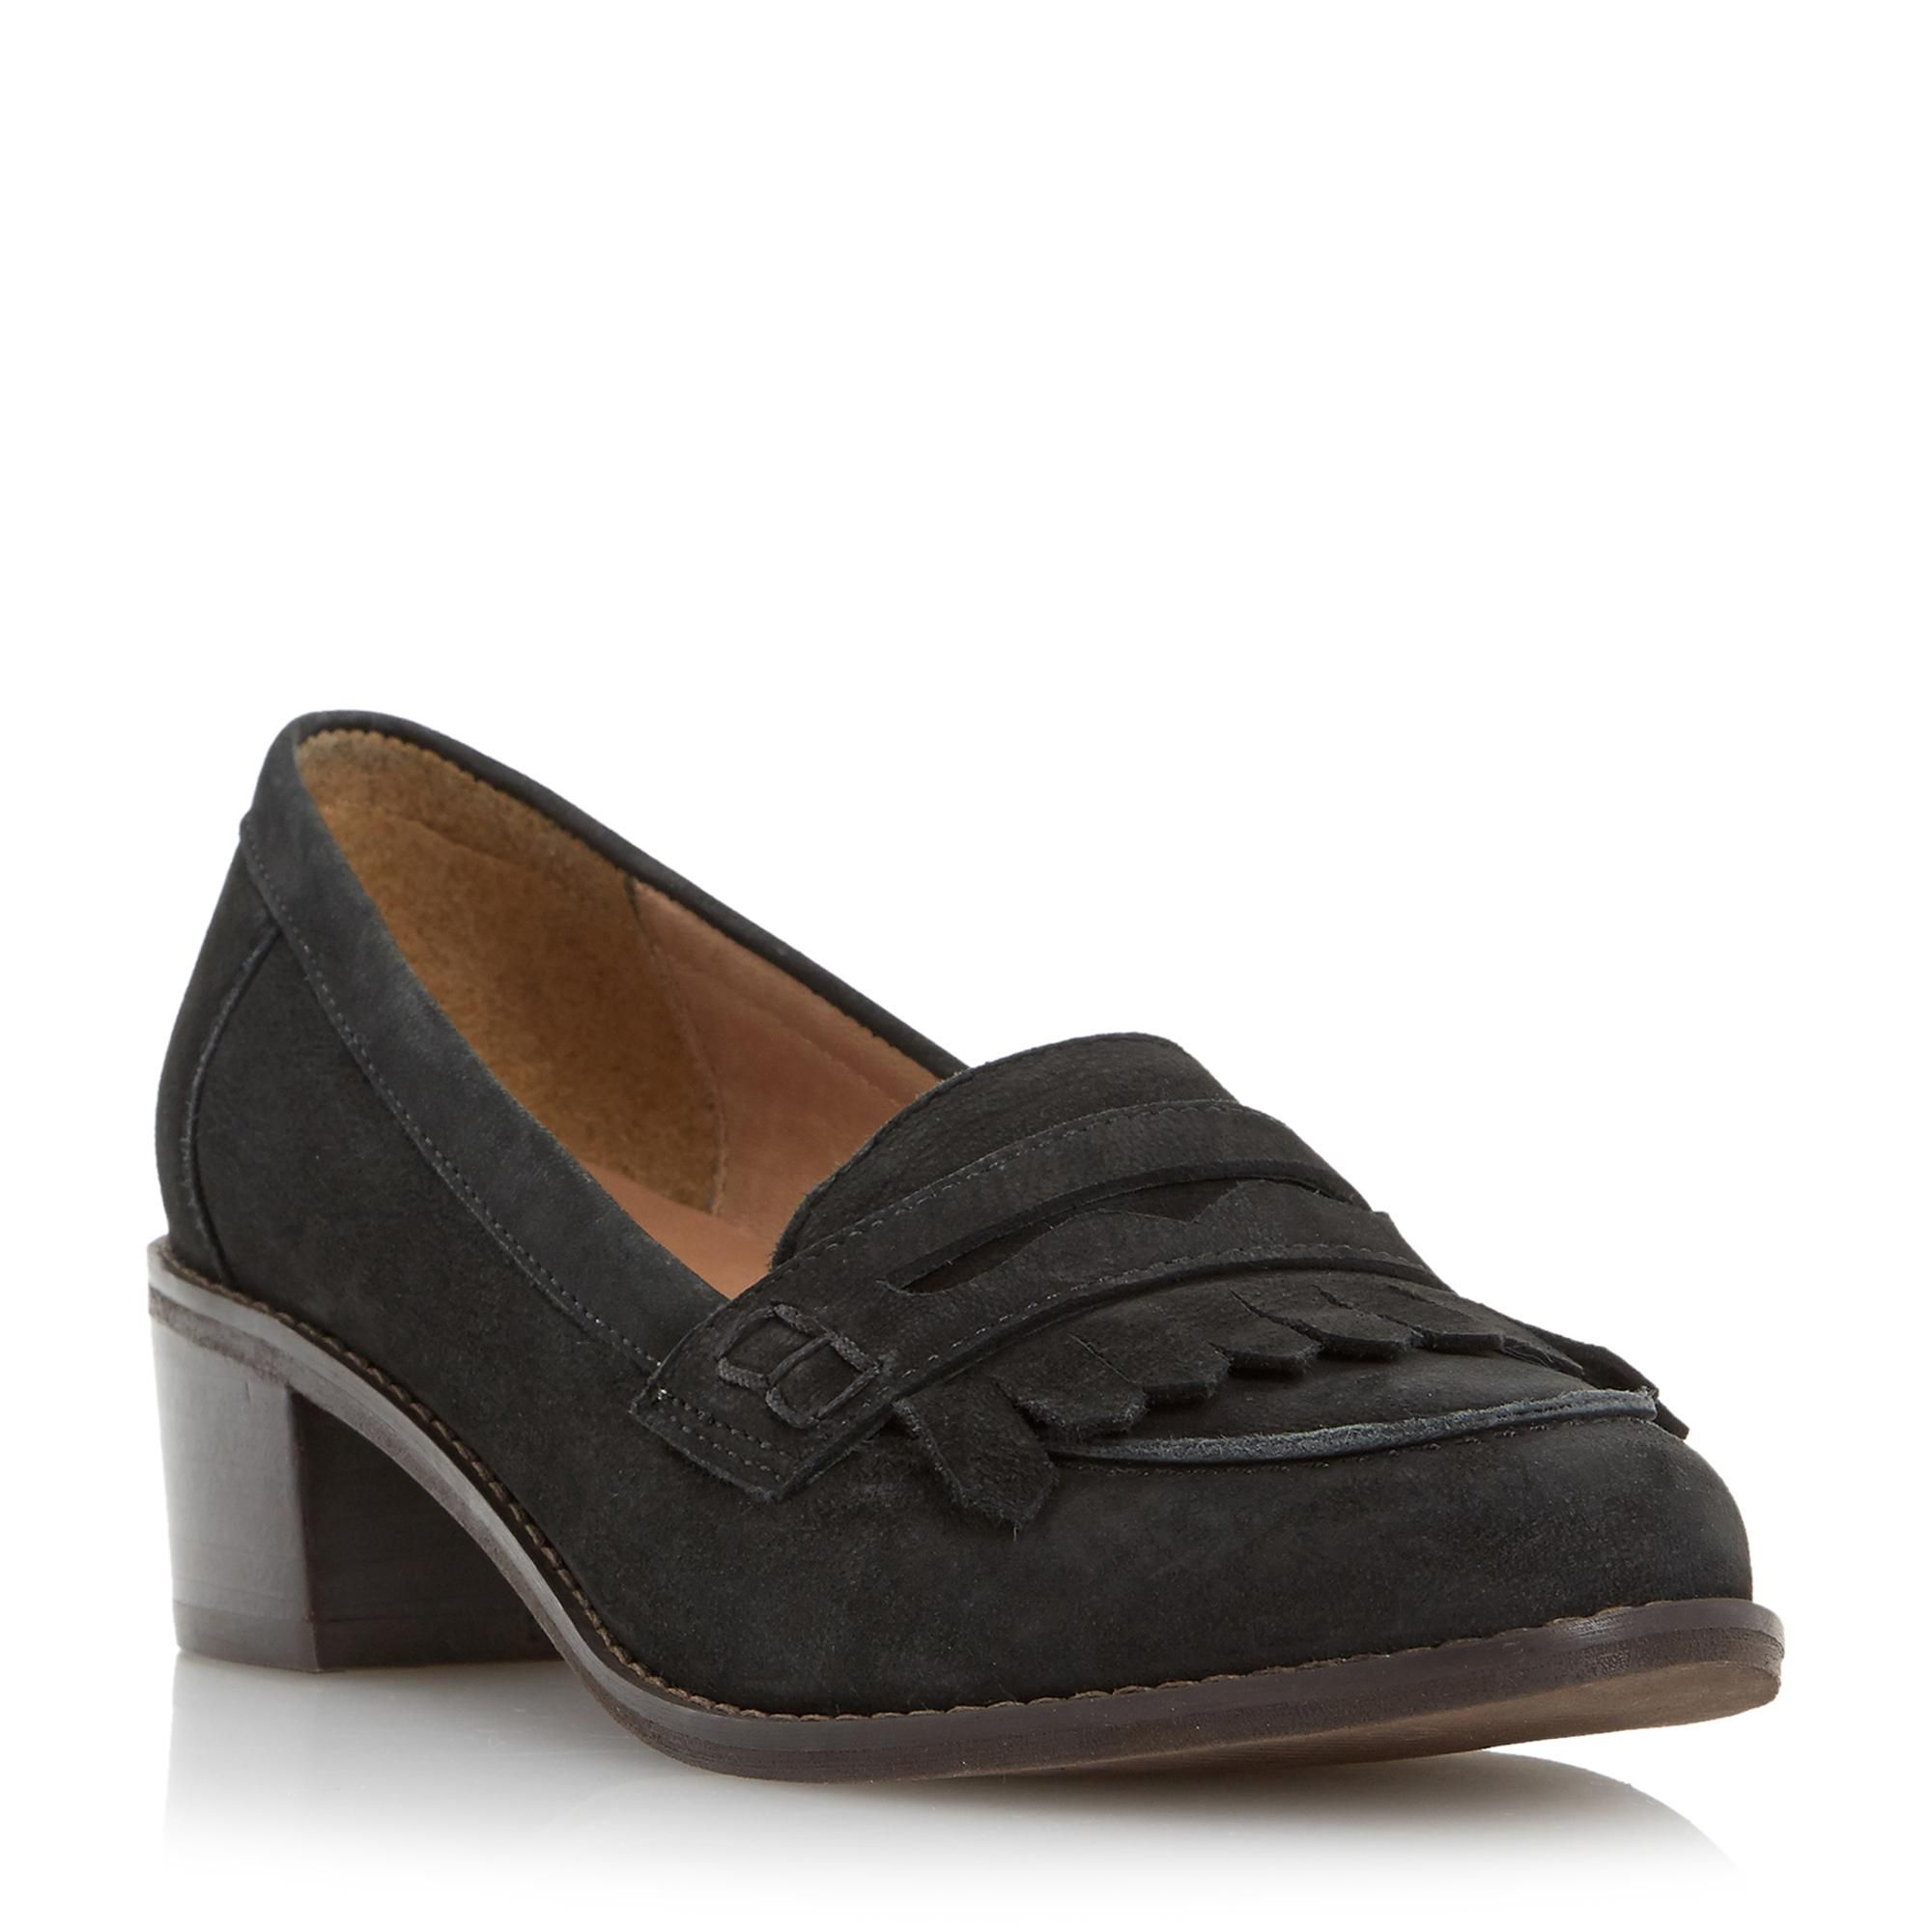 0ac06113b0b DUNE LADIES GWYNETH - Mid Block Heel Penny Loafer - black